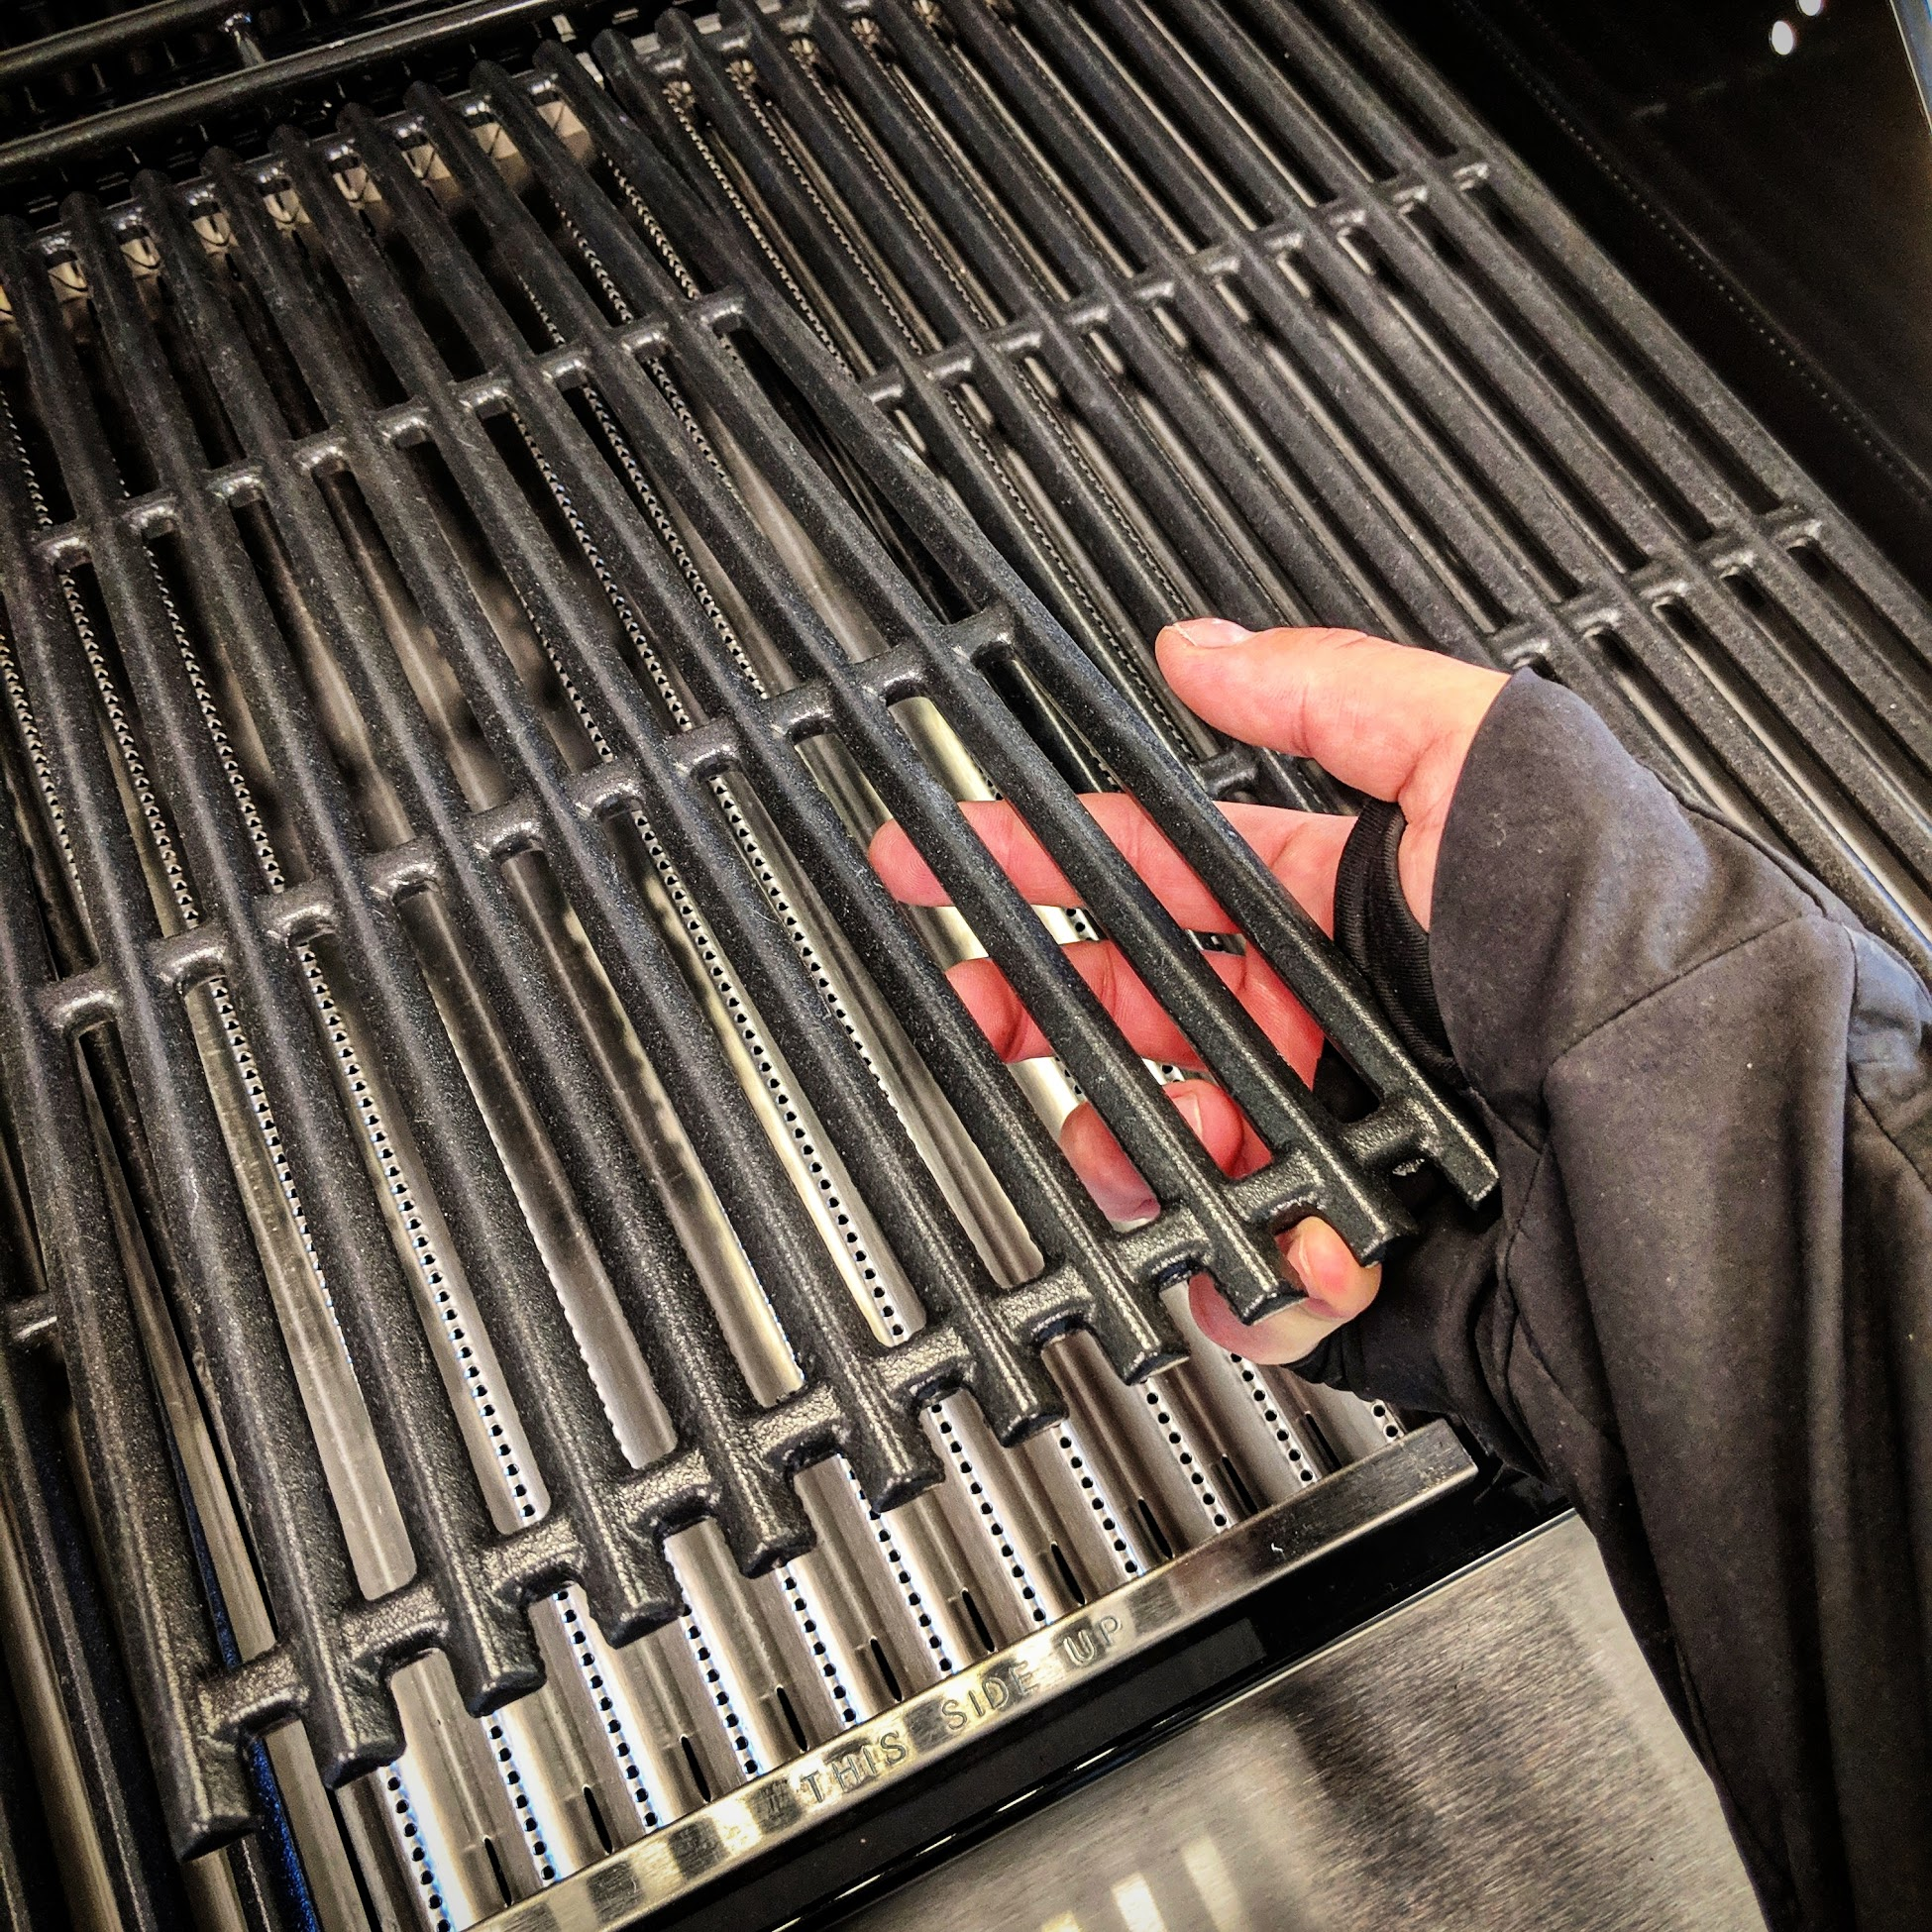 How to replace Char-Broil TRU-Infrared Grates and Emitters. - Easy step-by-step instructions for removing, cleaning and replacing your grates and emitter plates.